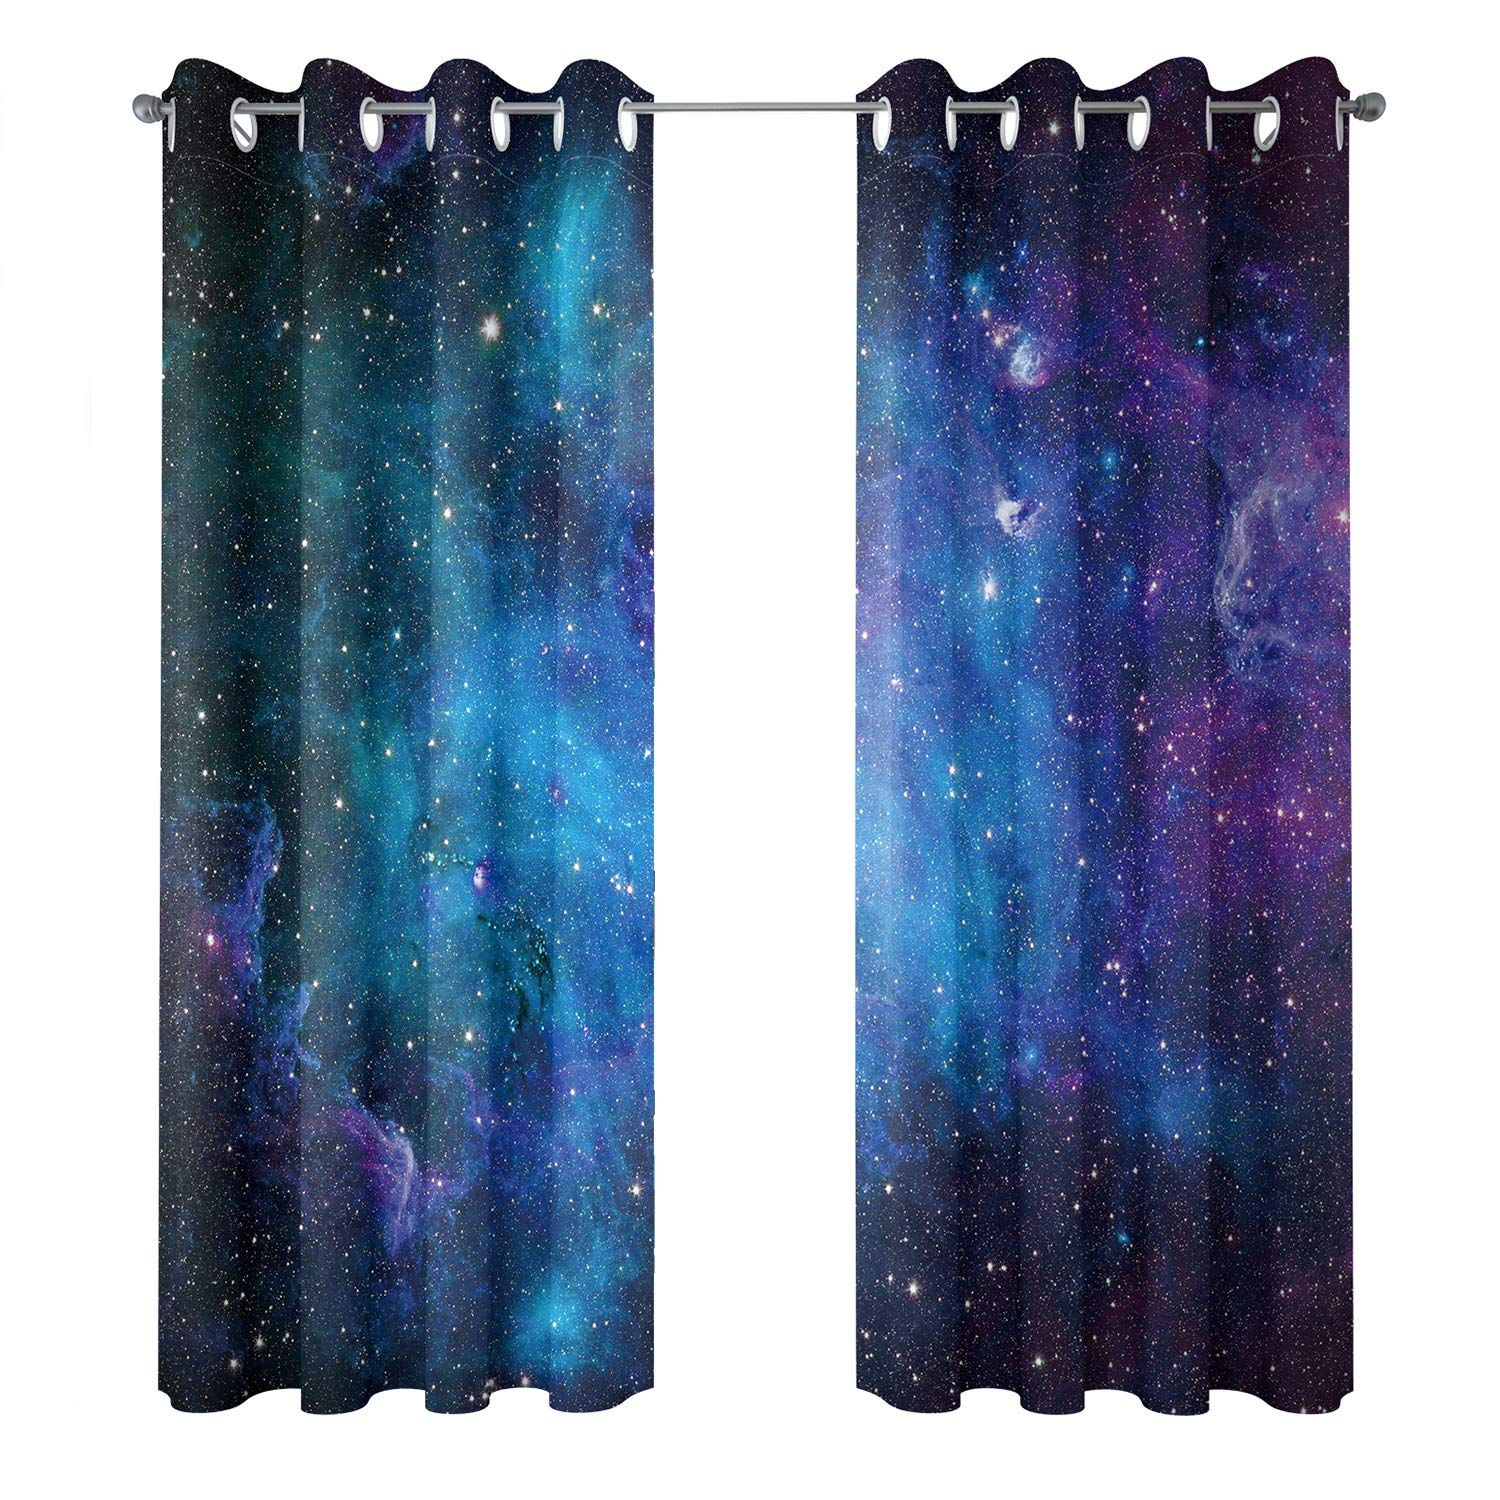 Riyidecor Starry Sky Night Blackout Curtains Dark Blue Starry Ocean Magical Universe Galaxy Nebula Stars Printed Living Room Bedroom Window Drapes Treatment Fabric (2 Panels 52 x 84 Inch)